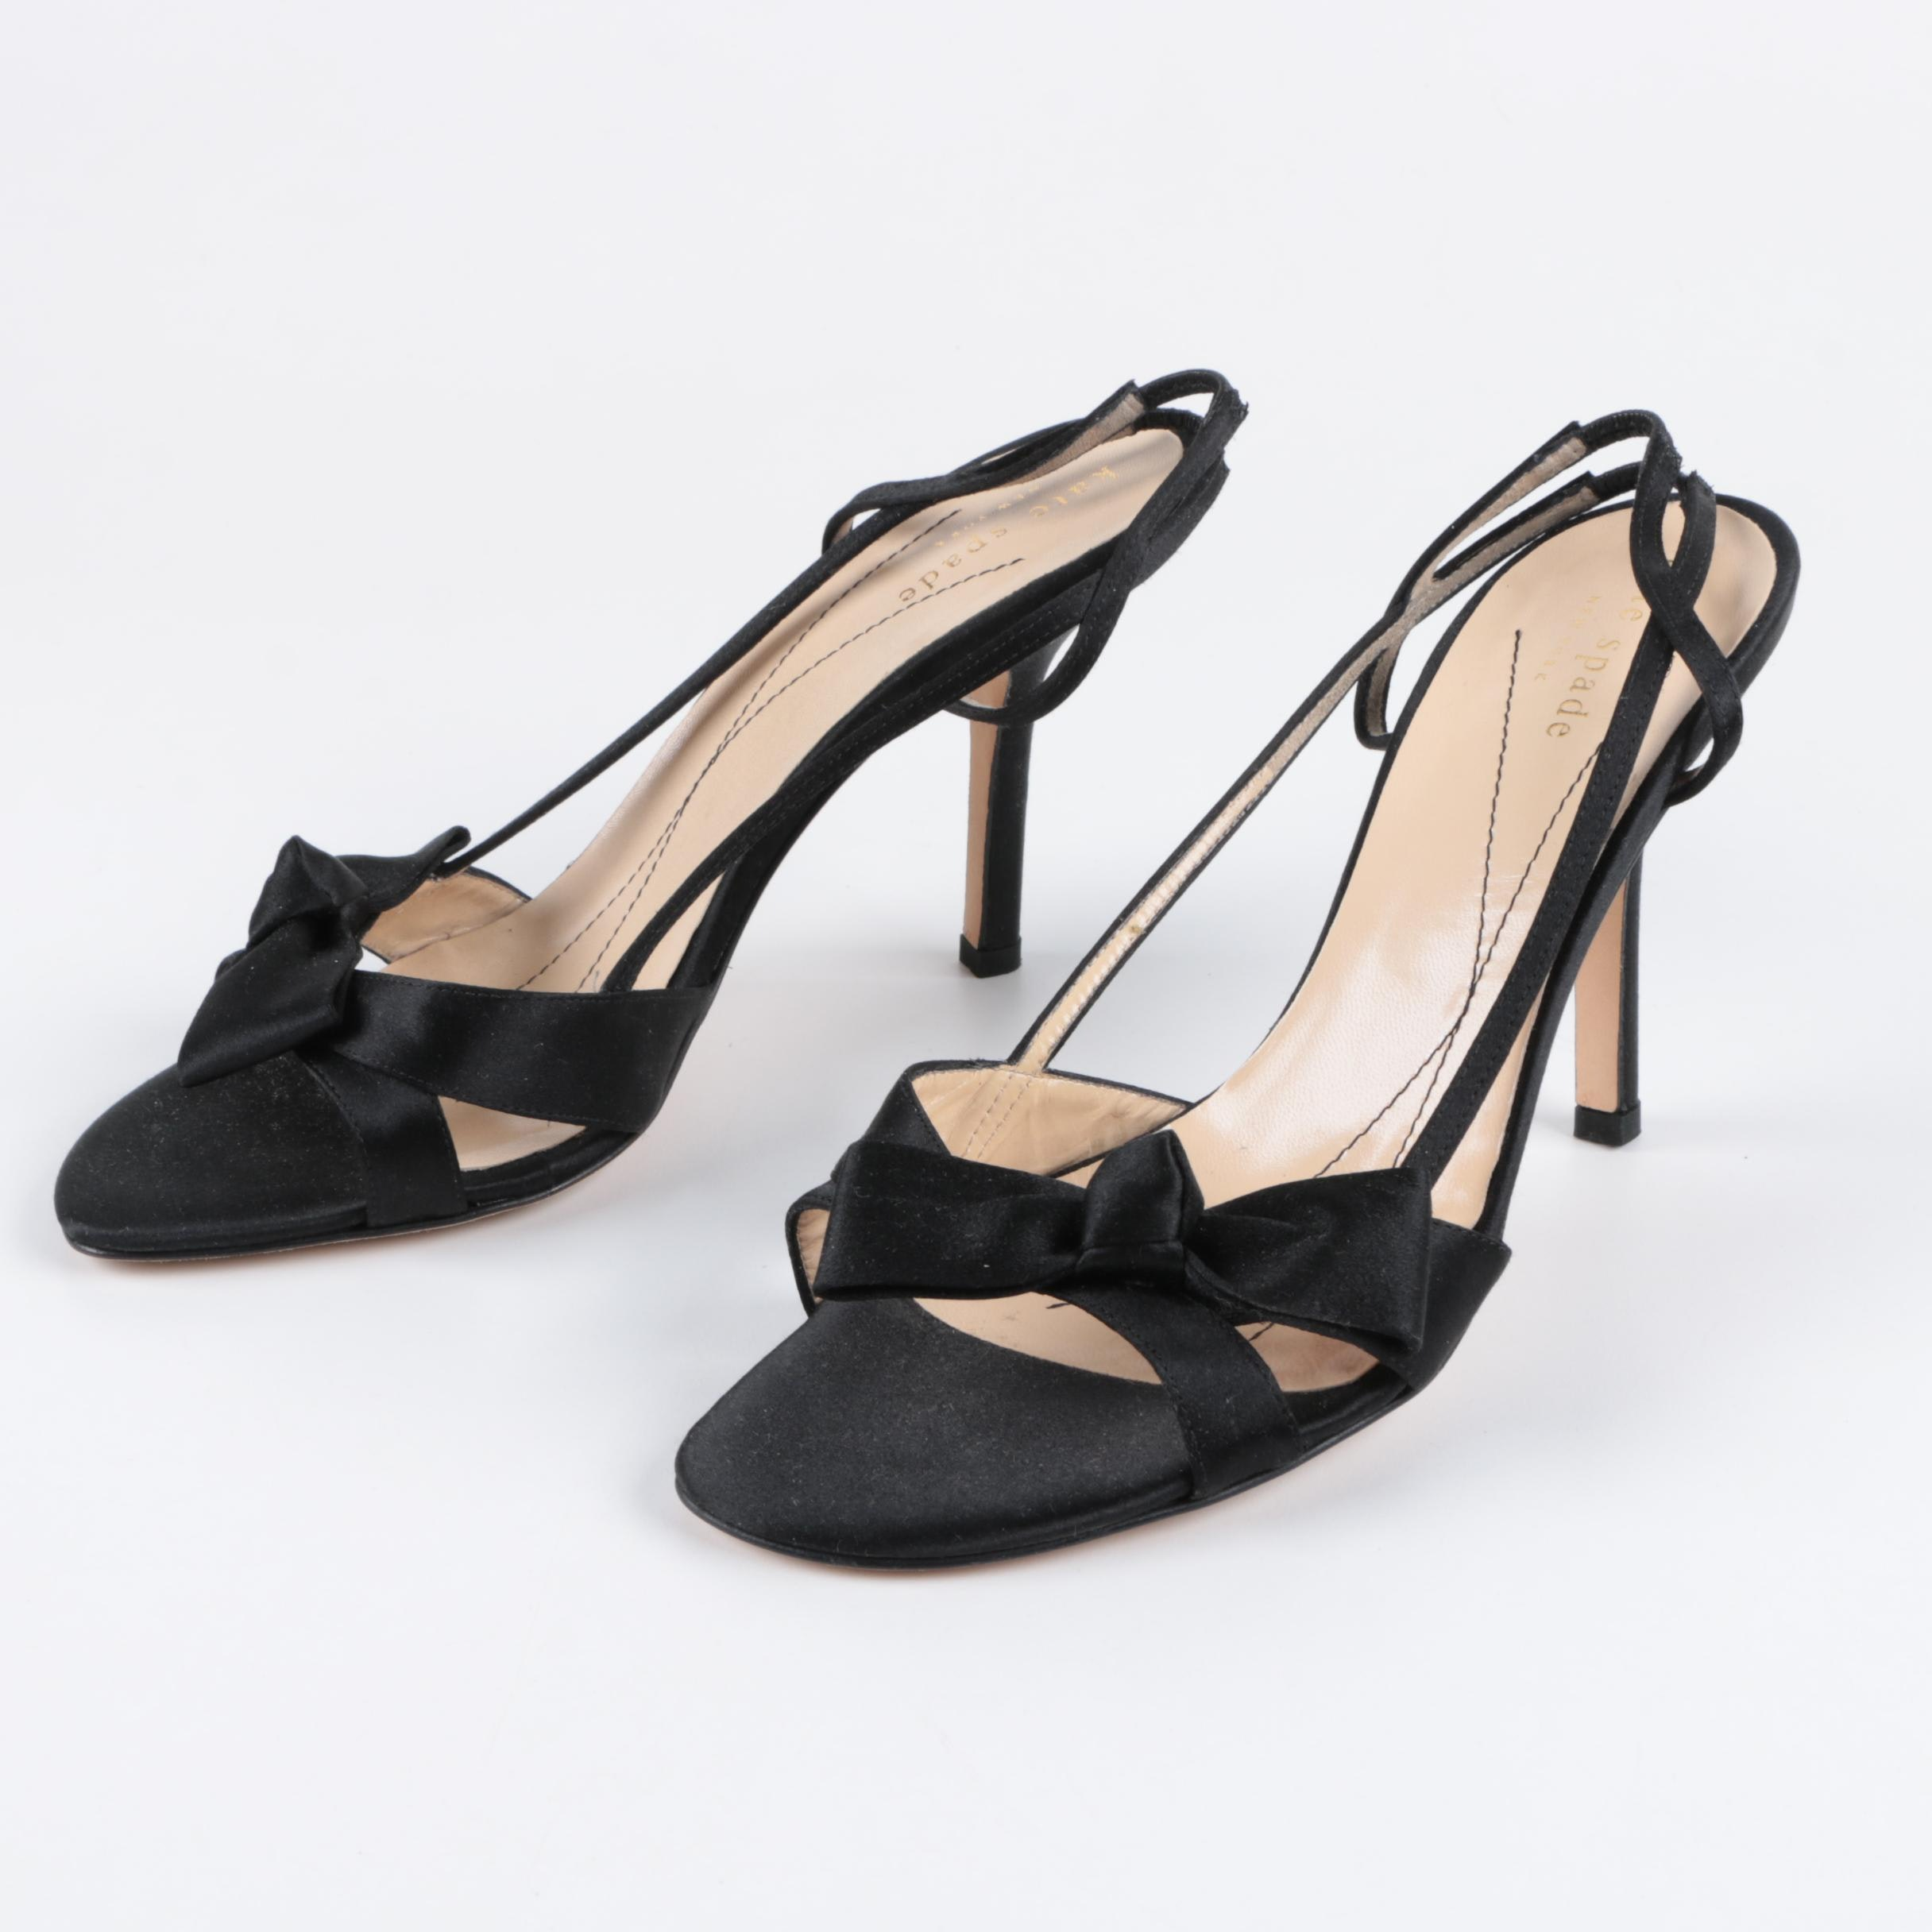 Kate Spade New York Lover Black Satin Sling Back High Heels with Bow